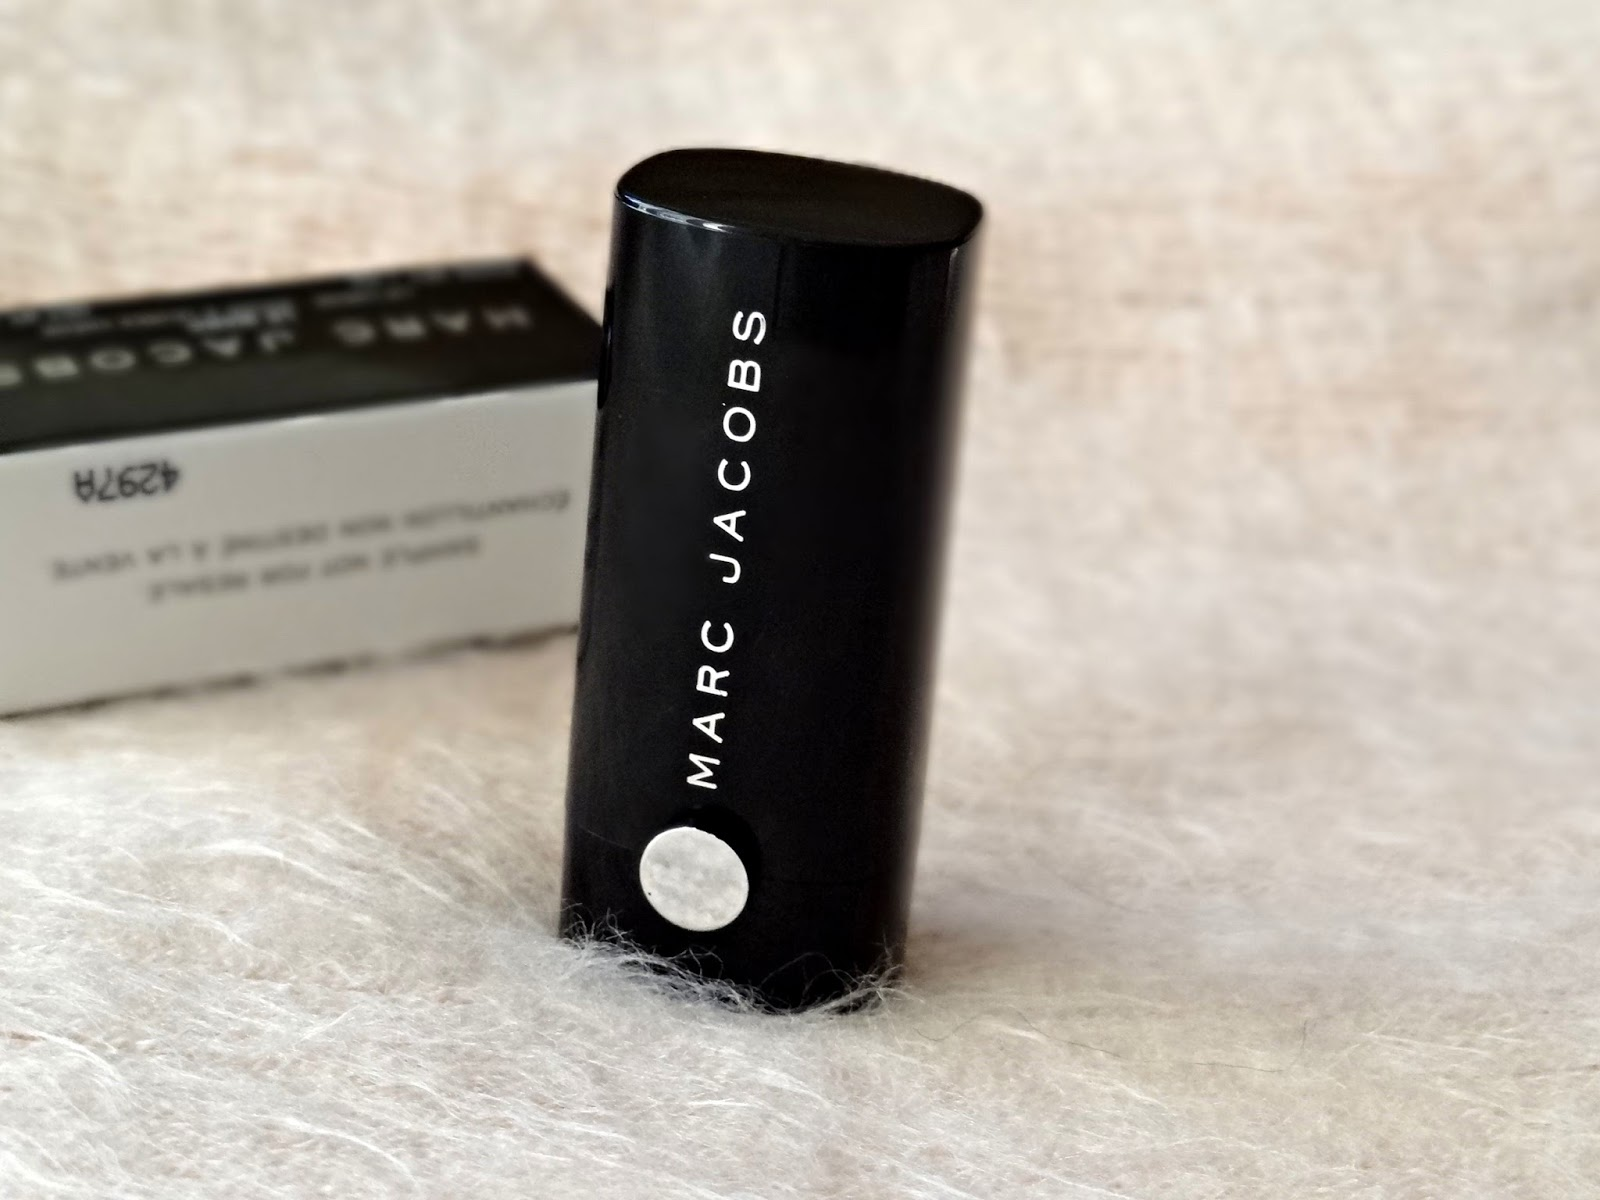 Marc Jacobs Beauty Le Marc Lip Creme in Kiss Kiss Bang Bang Review, Photos & Swatches